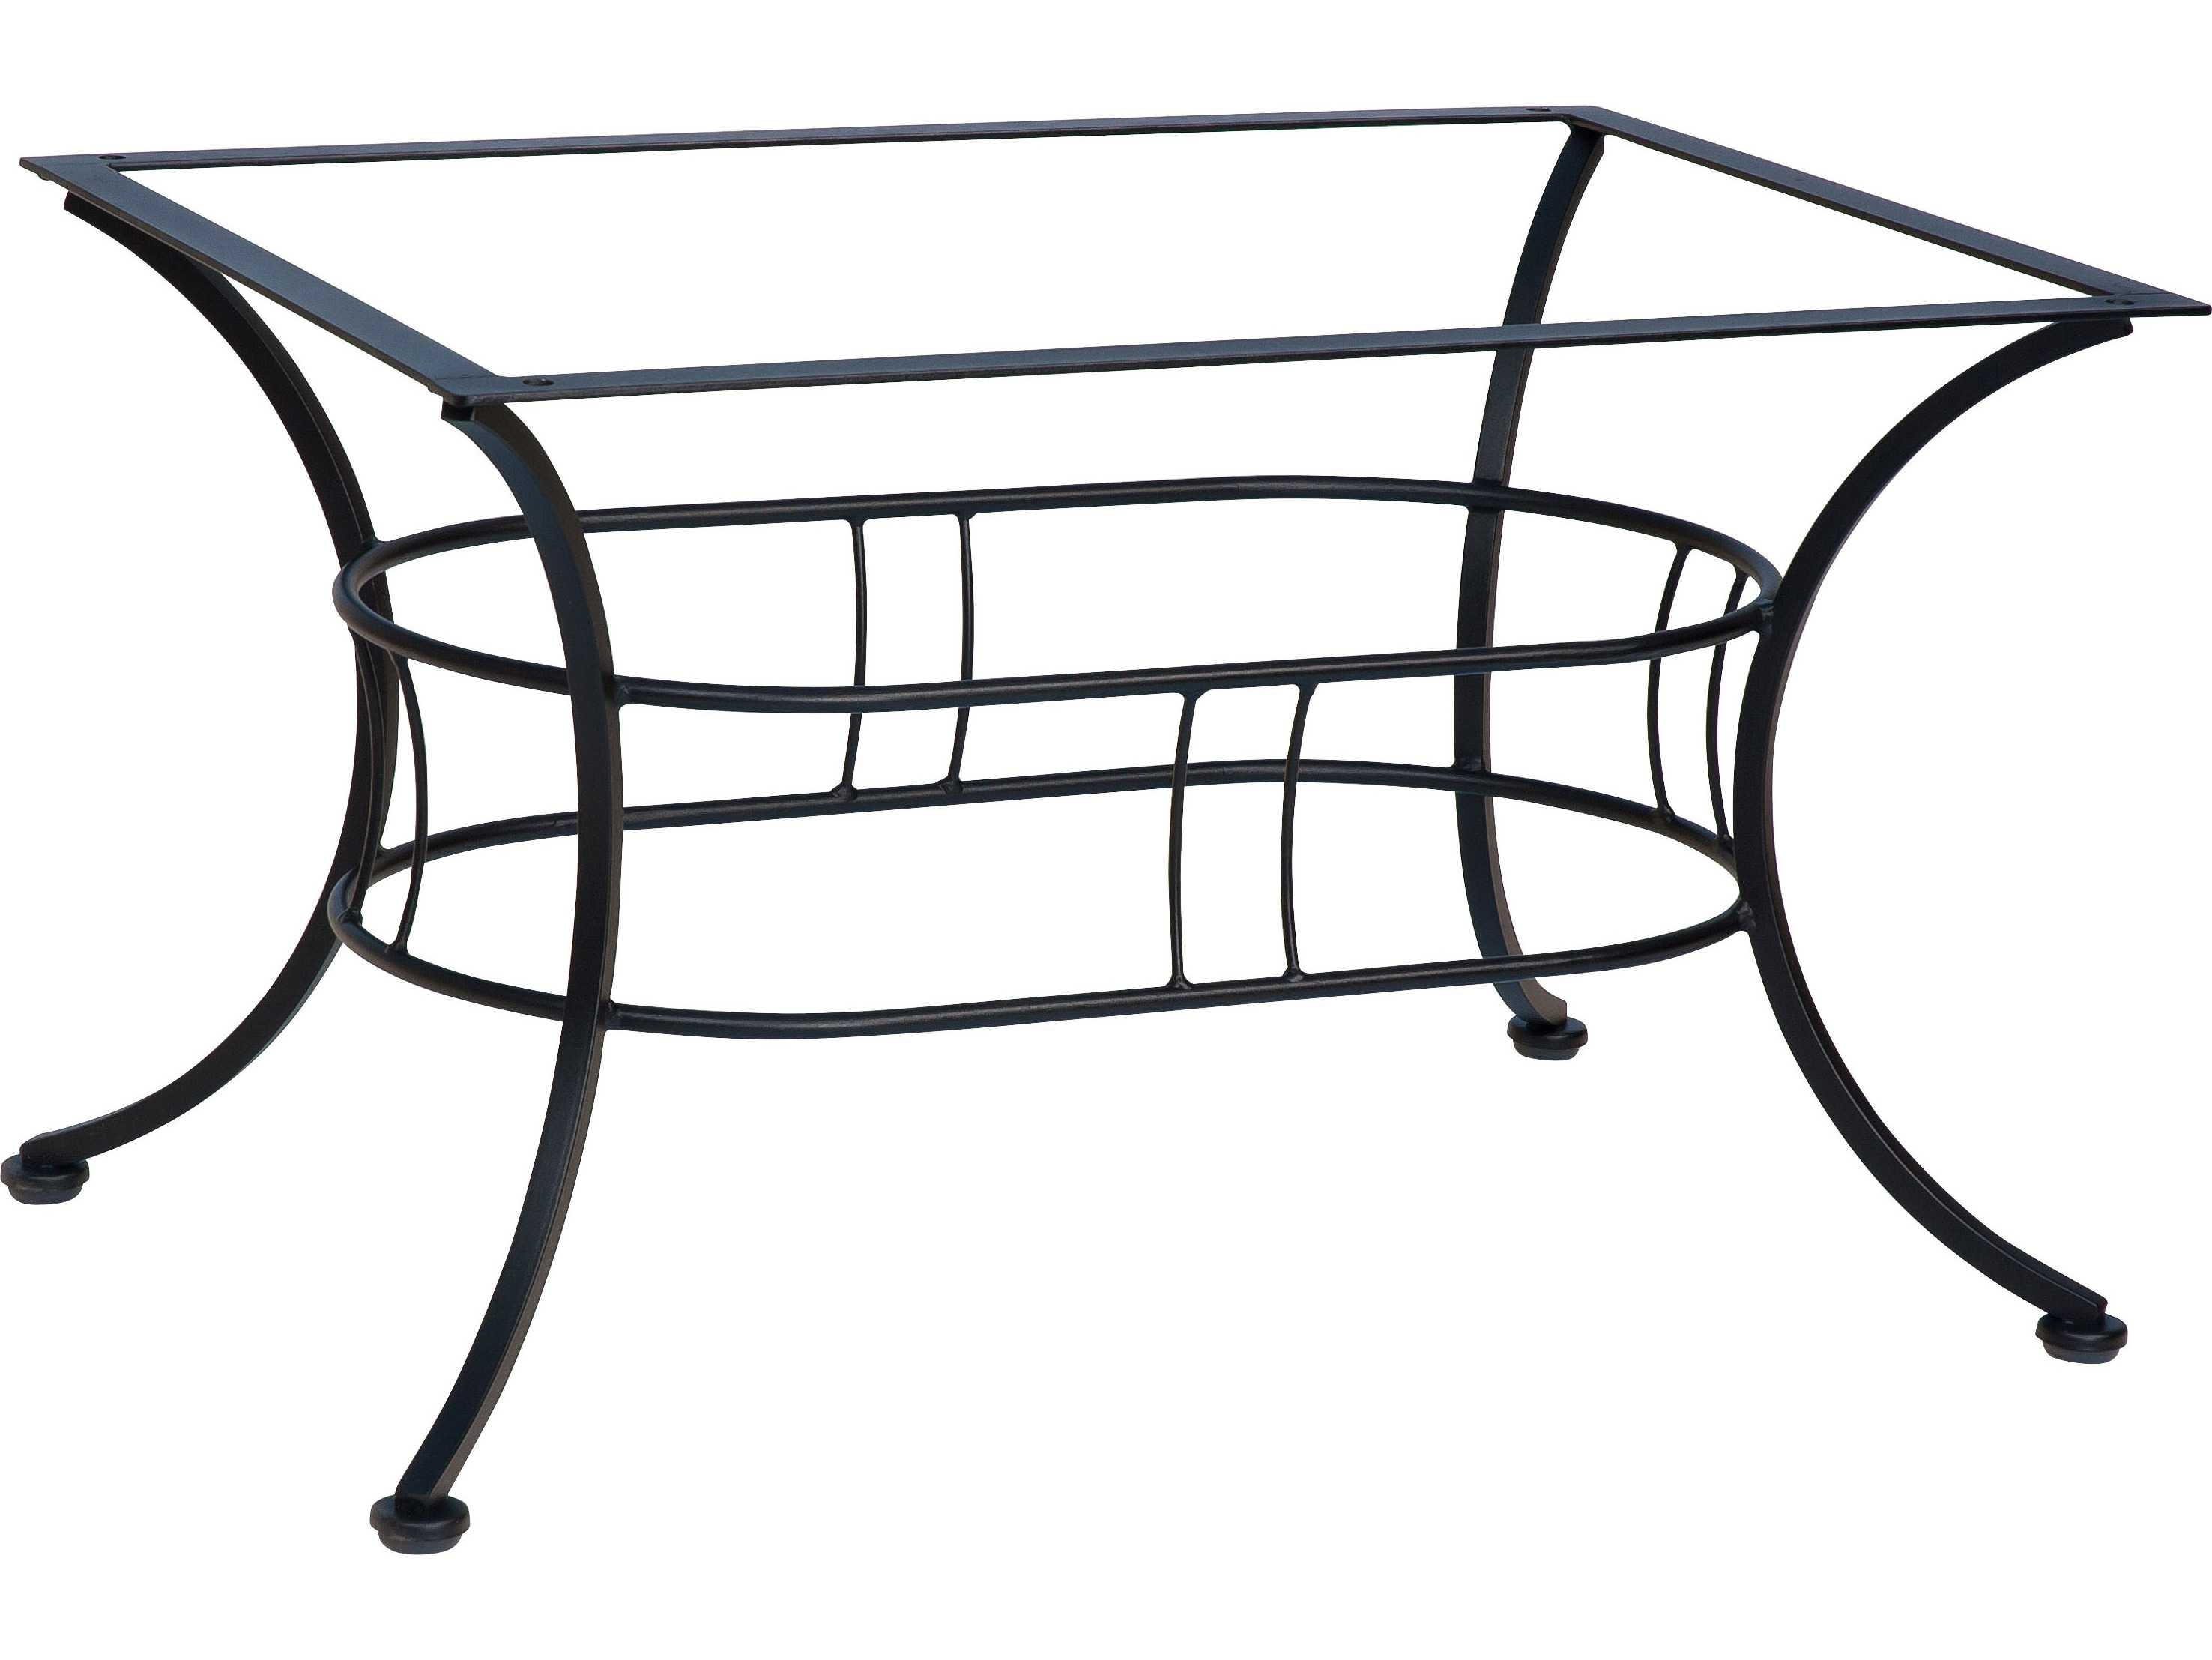 Woodard easton wrought iron coffee table base wr1n4500 for Wrought iron coffee table base